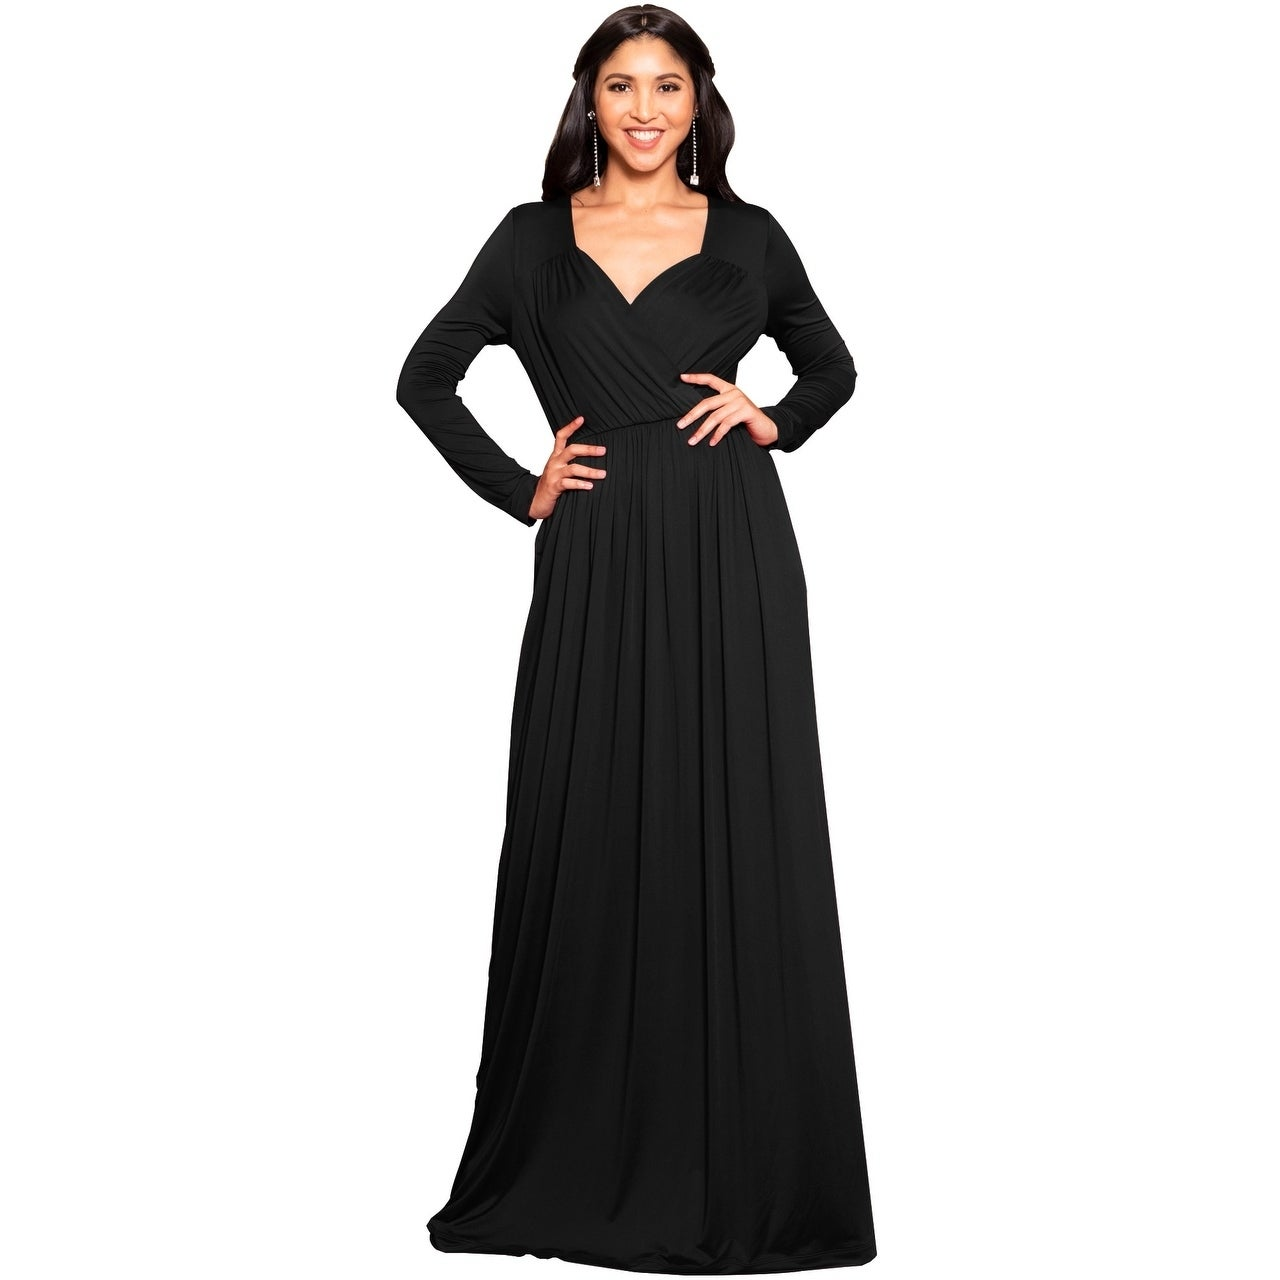 2b1b7789197 Shop KOH KOH Long Sleeve Flowy Slit Sexy Wrap Empire Waist Maxi Dress Gown  - Free Shipping Today - Overstock - 10835726